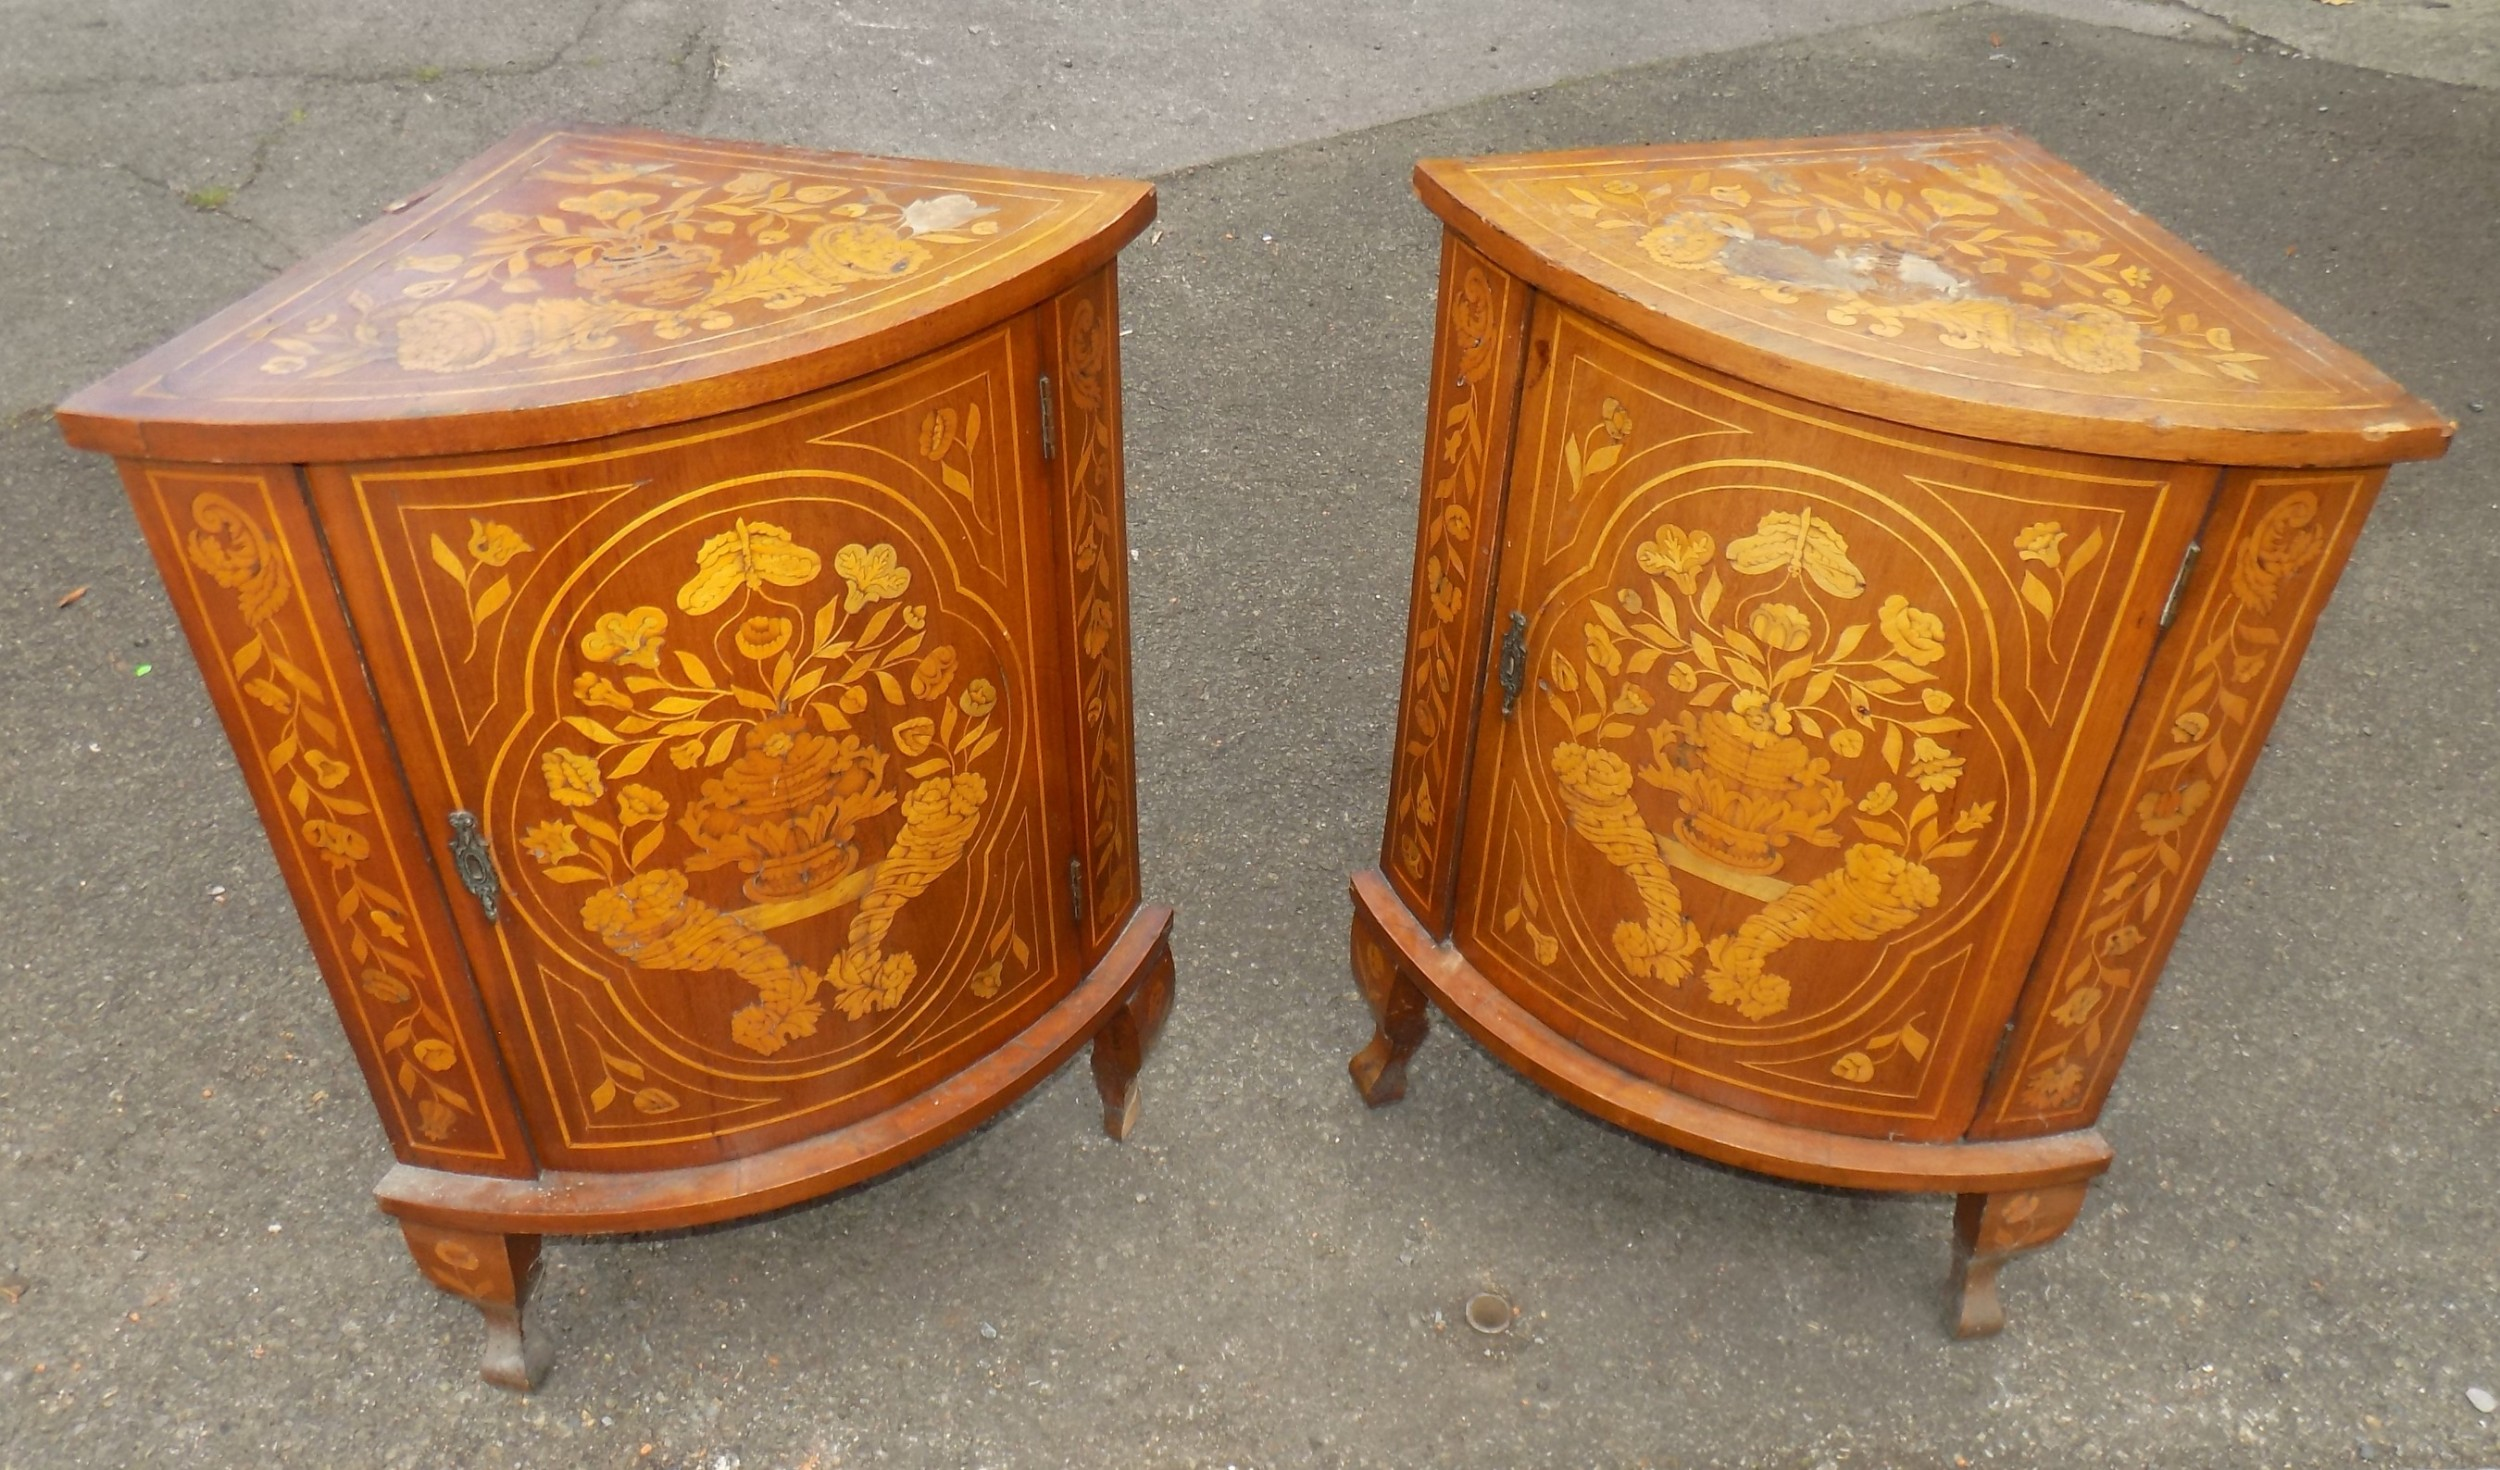 pair of 19th century dutch floral marquetry mahogany inlaid corner cabinets